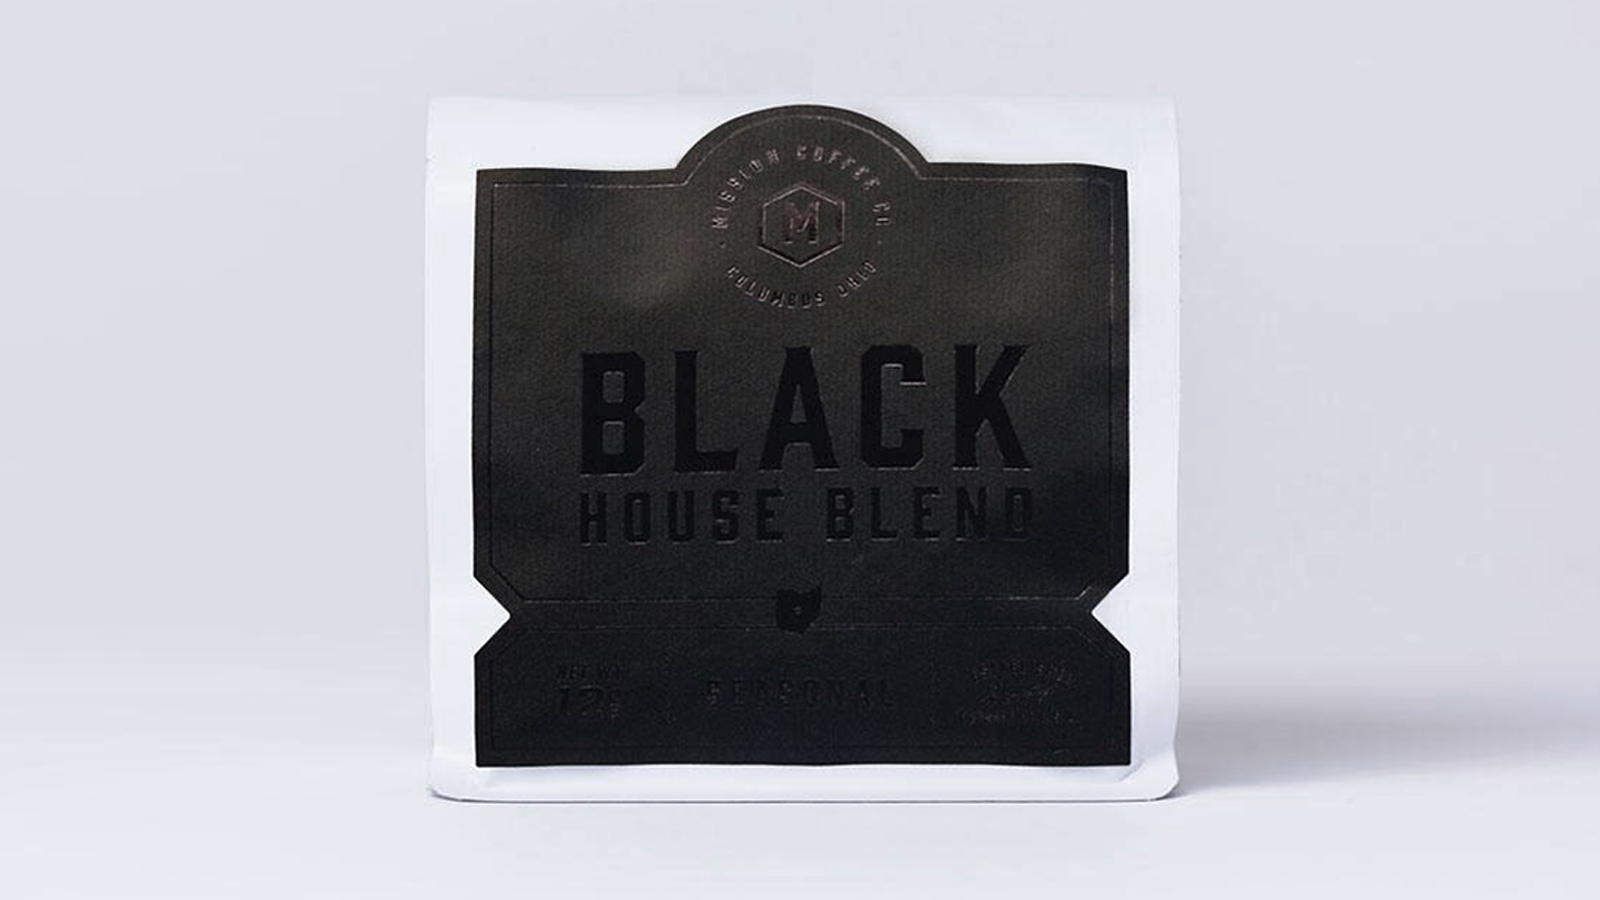 Mission Coffee Co. Black House Blend